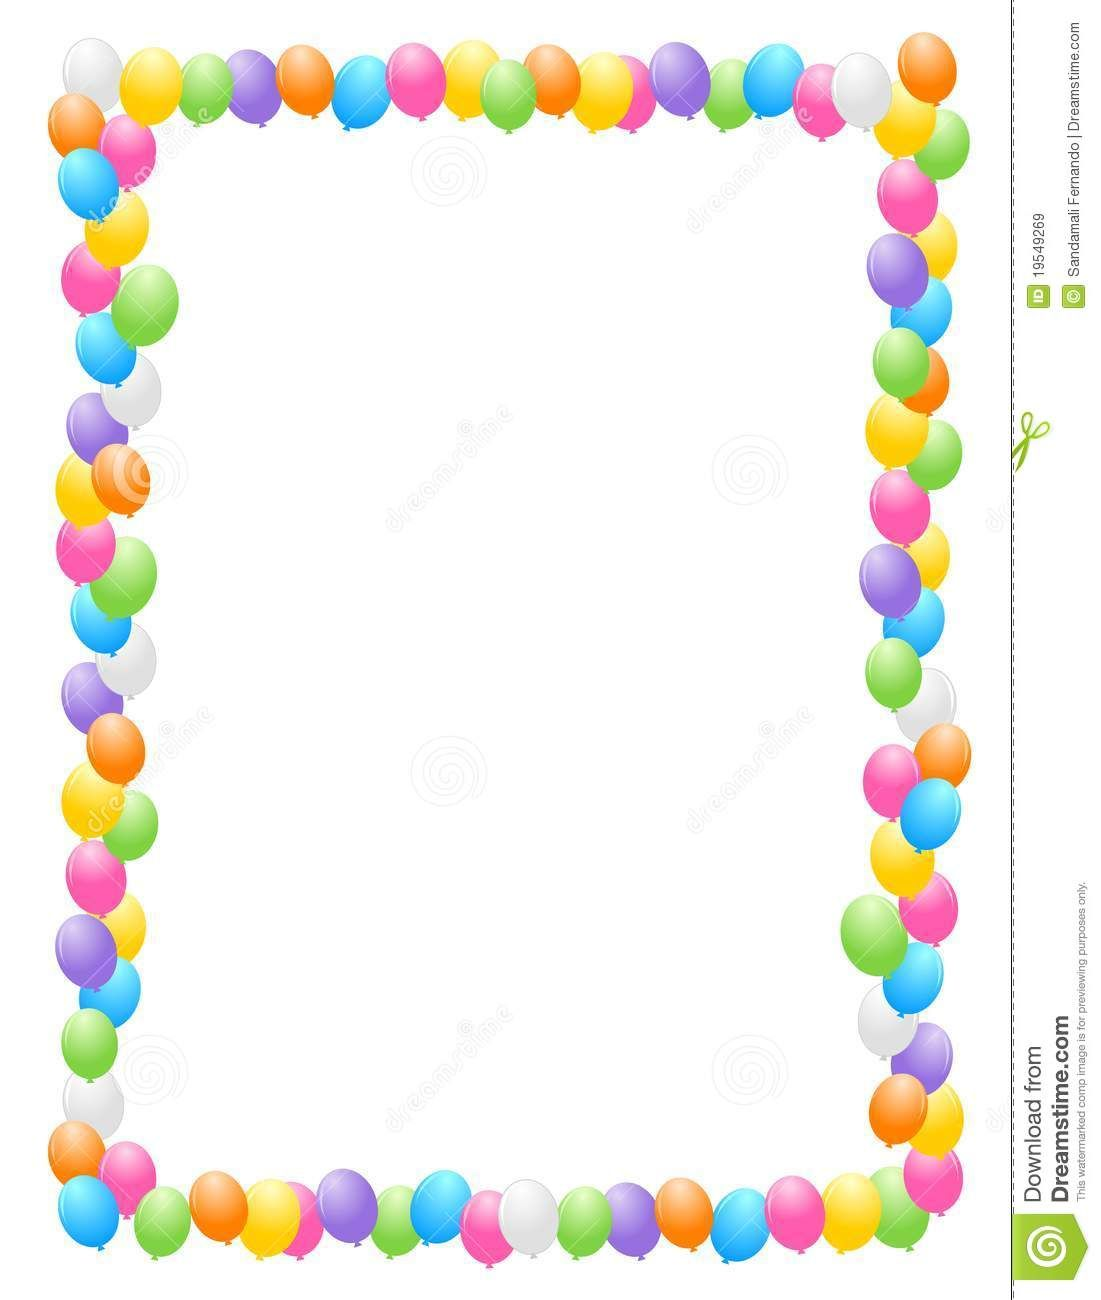 baby page borders in word - Google Search | school ...